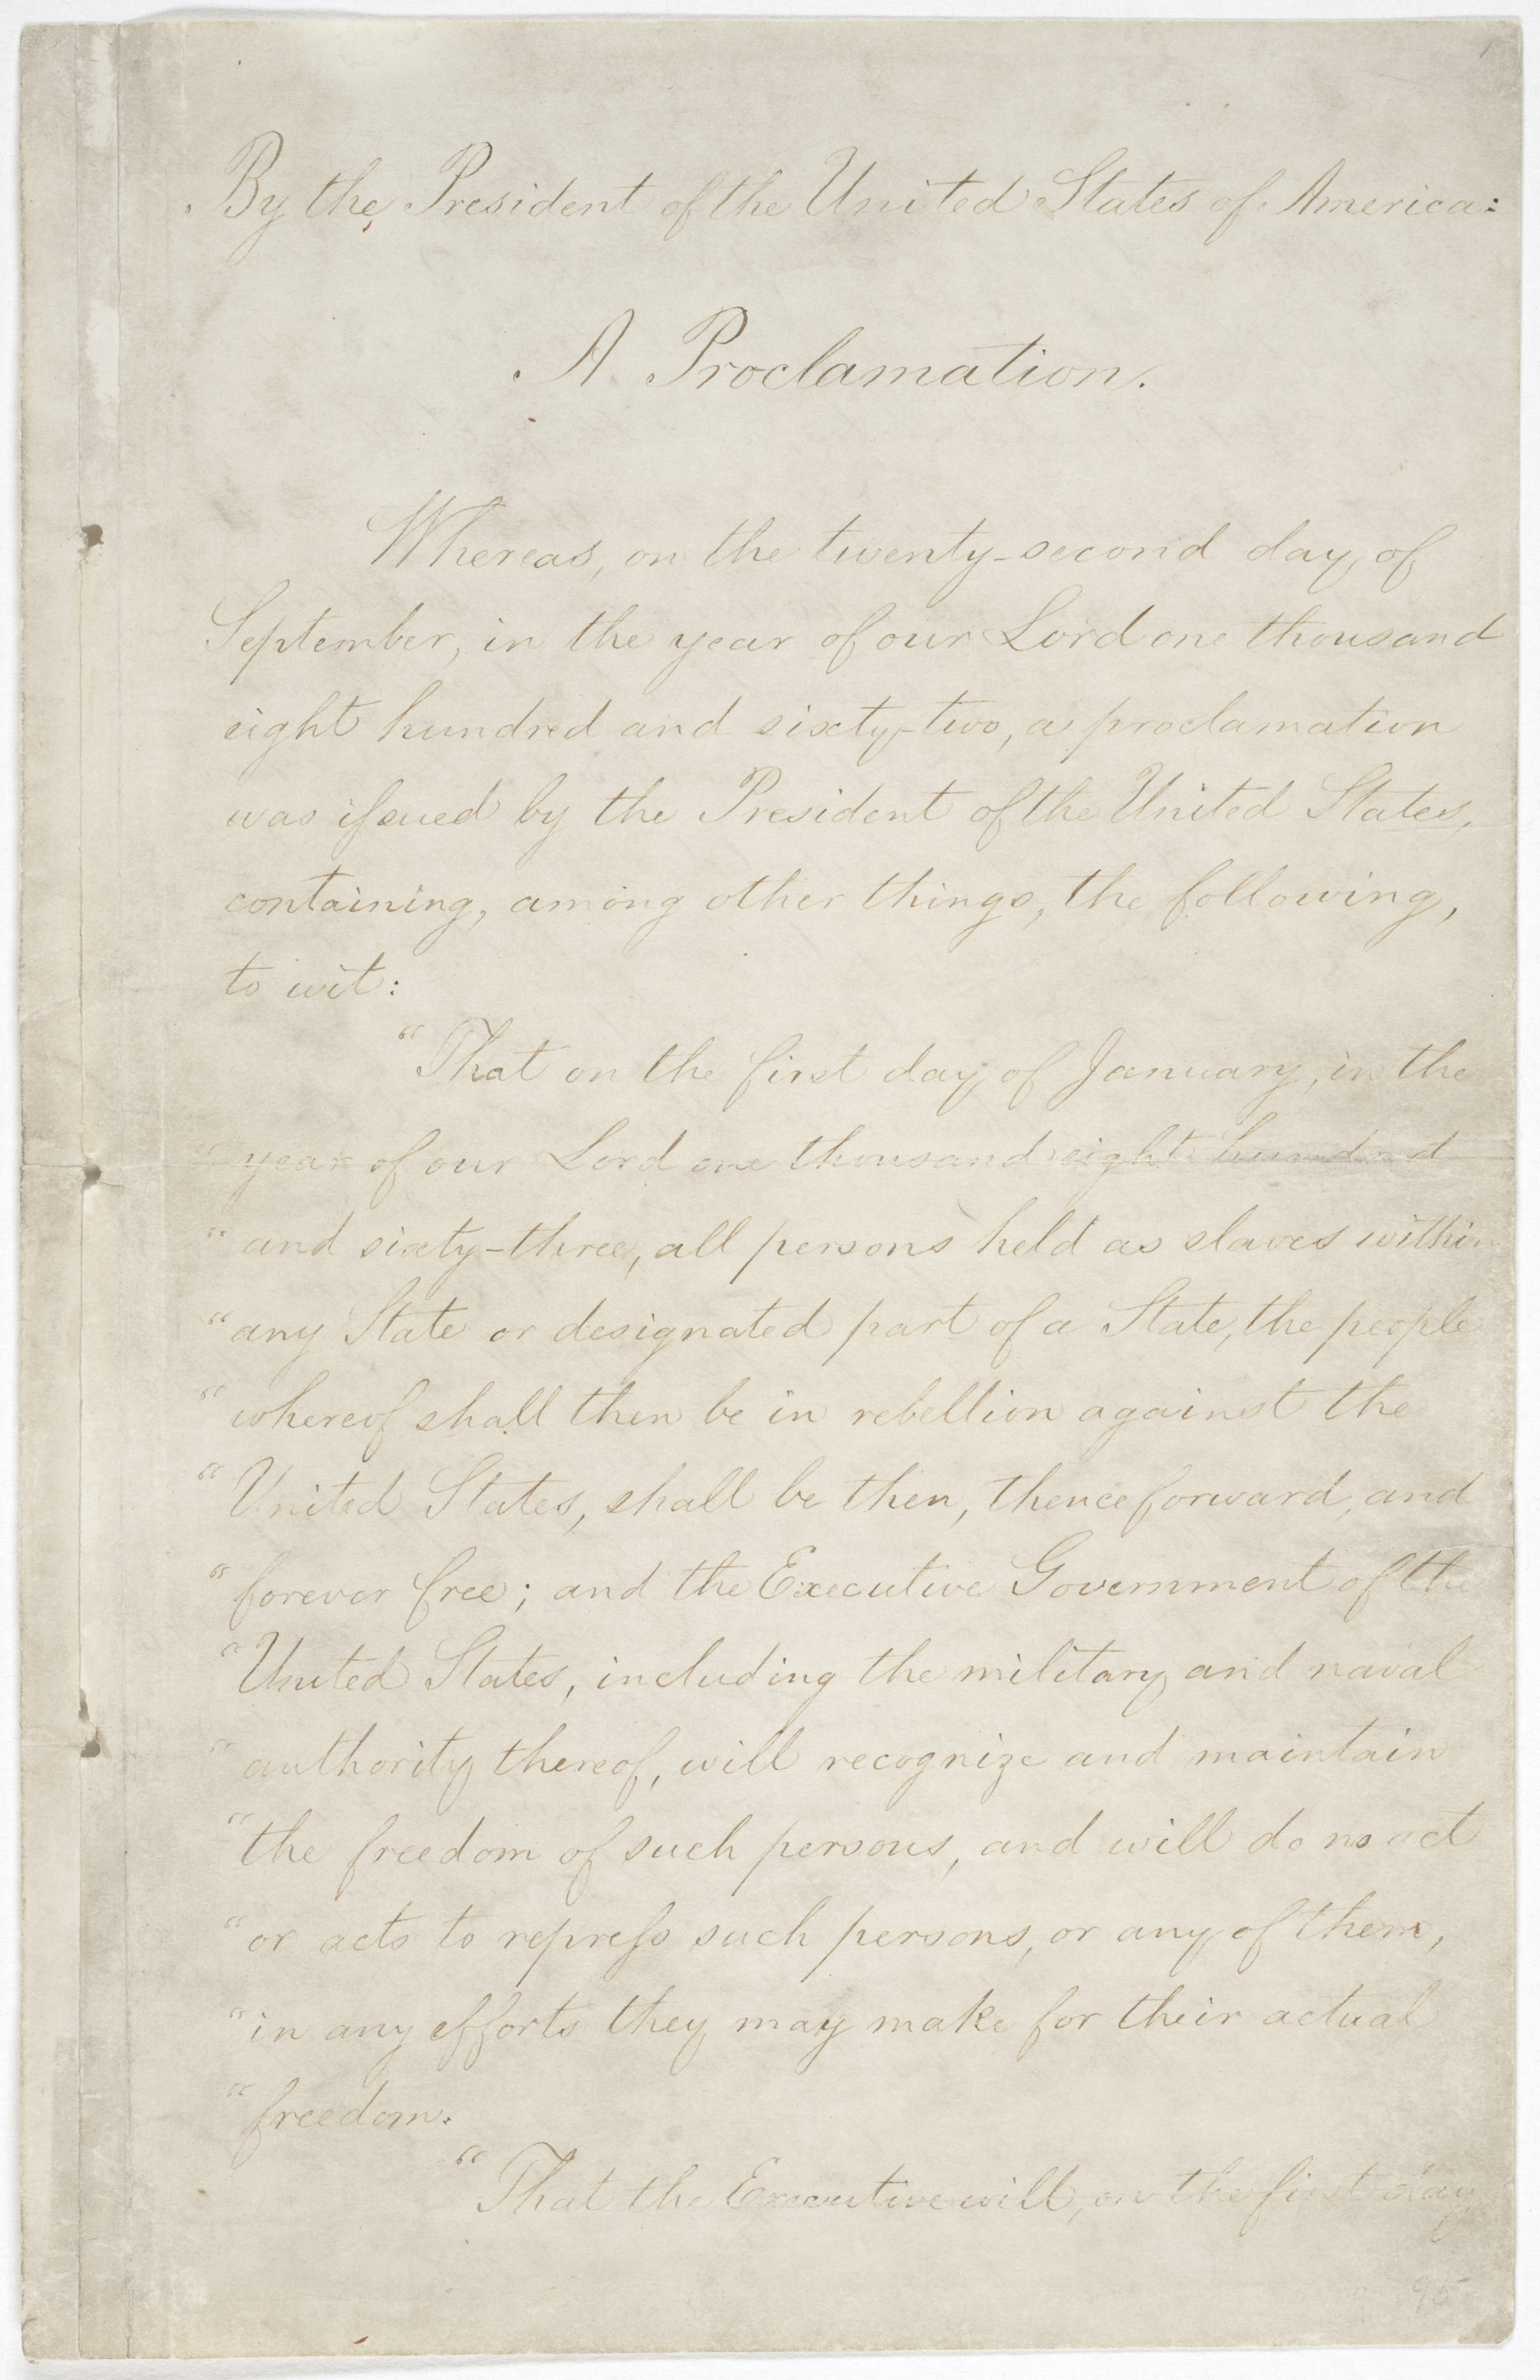 The first page of the original Emancipation Proclamation on display at the National Archives in Washington, D.C.